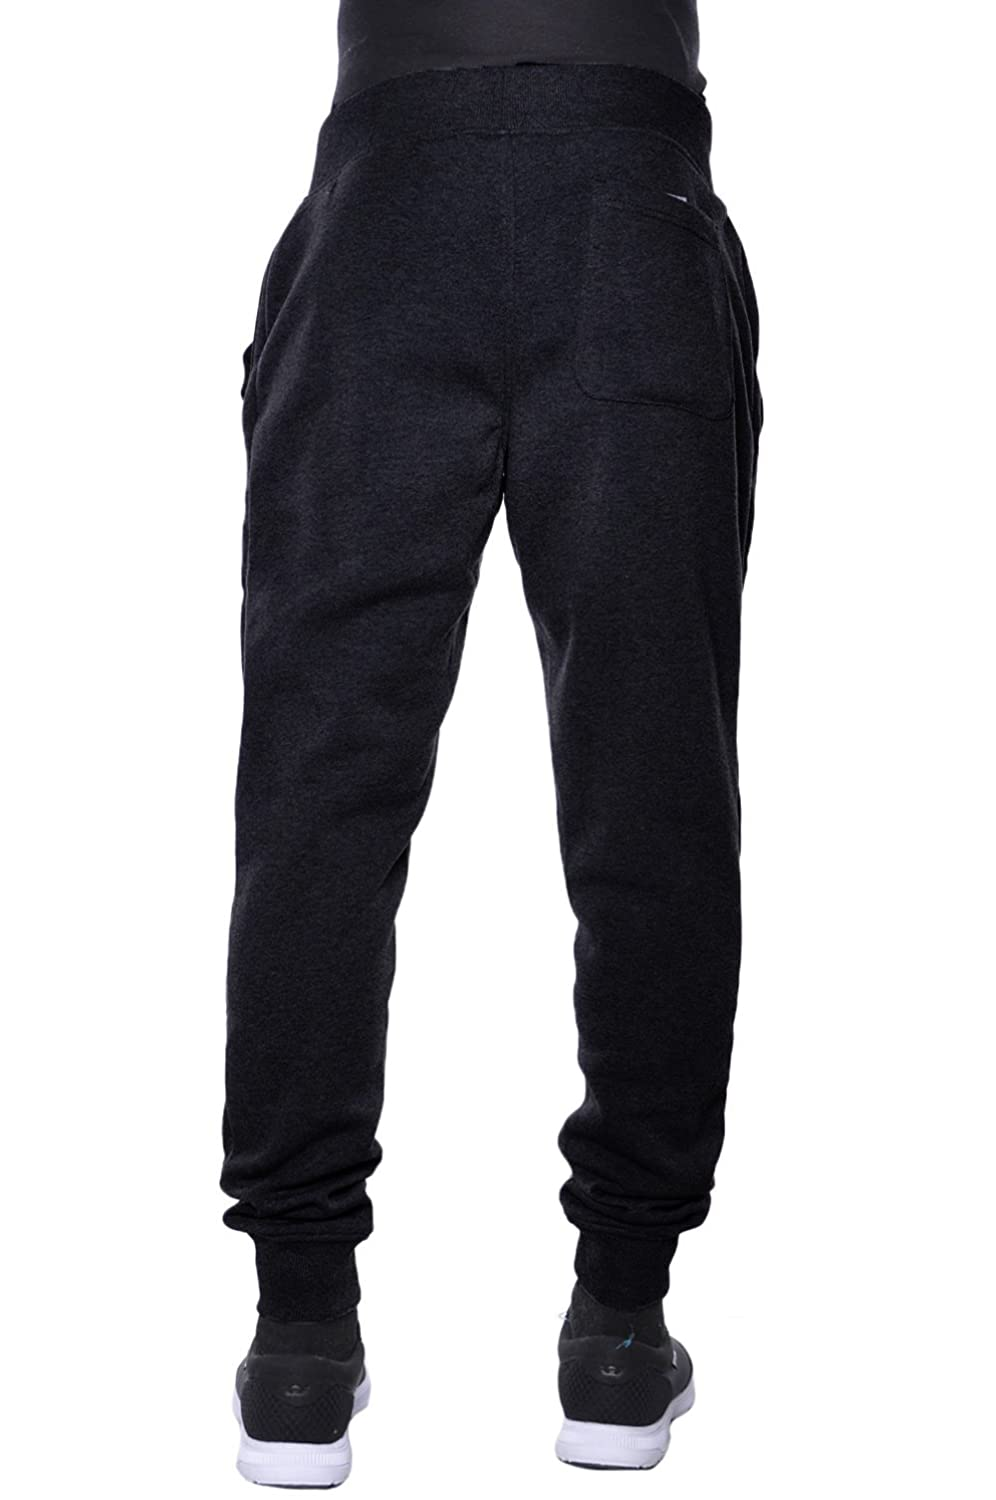 6906749a771 Amazon.com  Hat and Beyond Mens Fleece Jogger Pants Elastic Active Basic  Urban Harem Slim Fit  Clothing